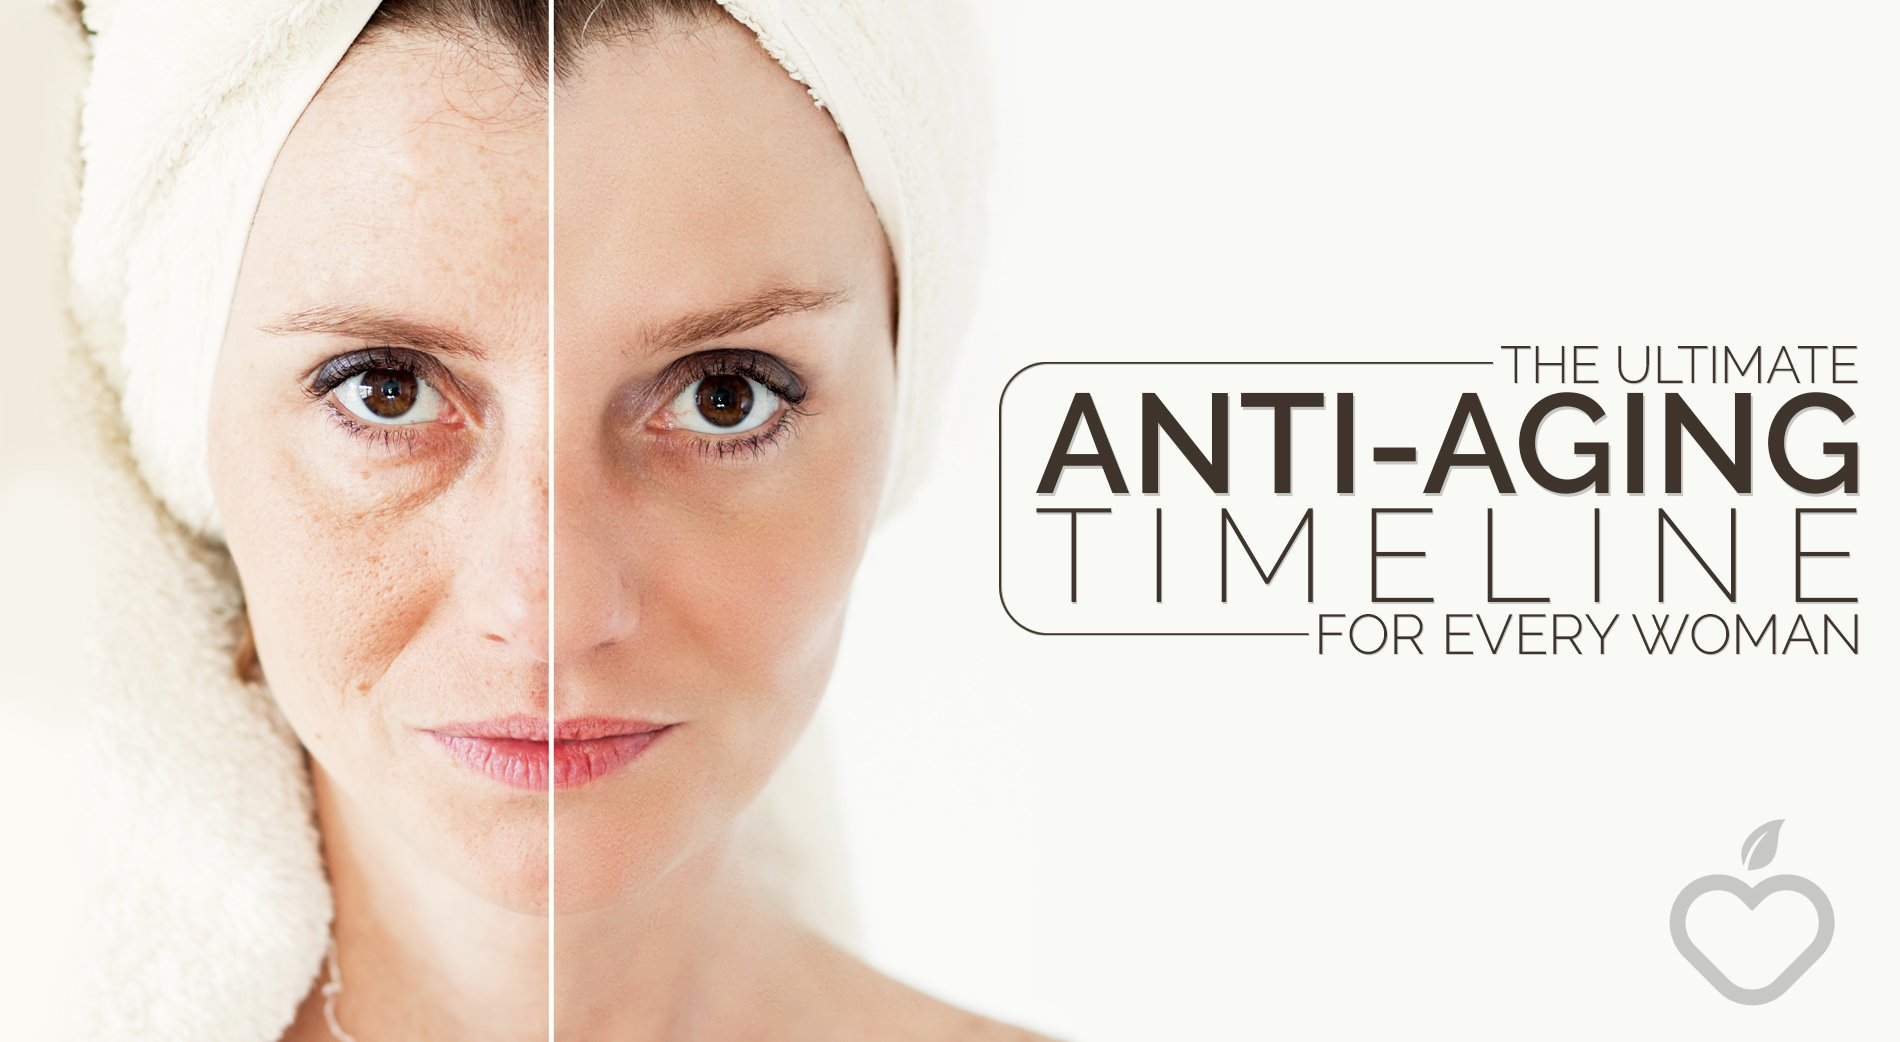 The Ultimate Anti-Aging Timeline For Every Woman